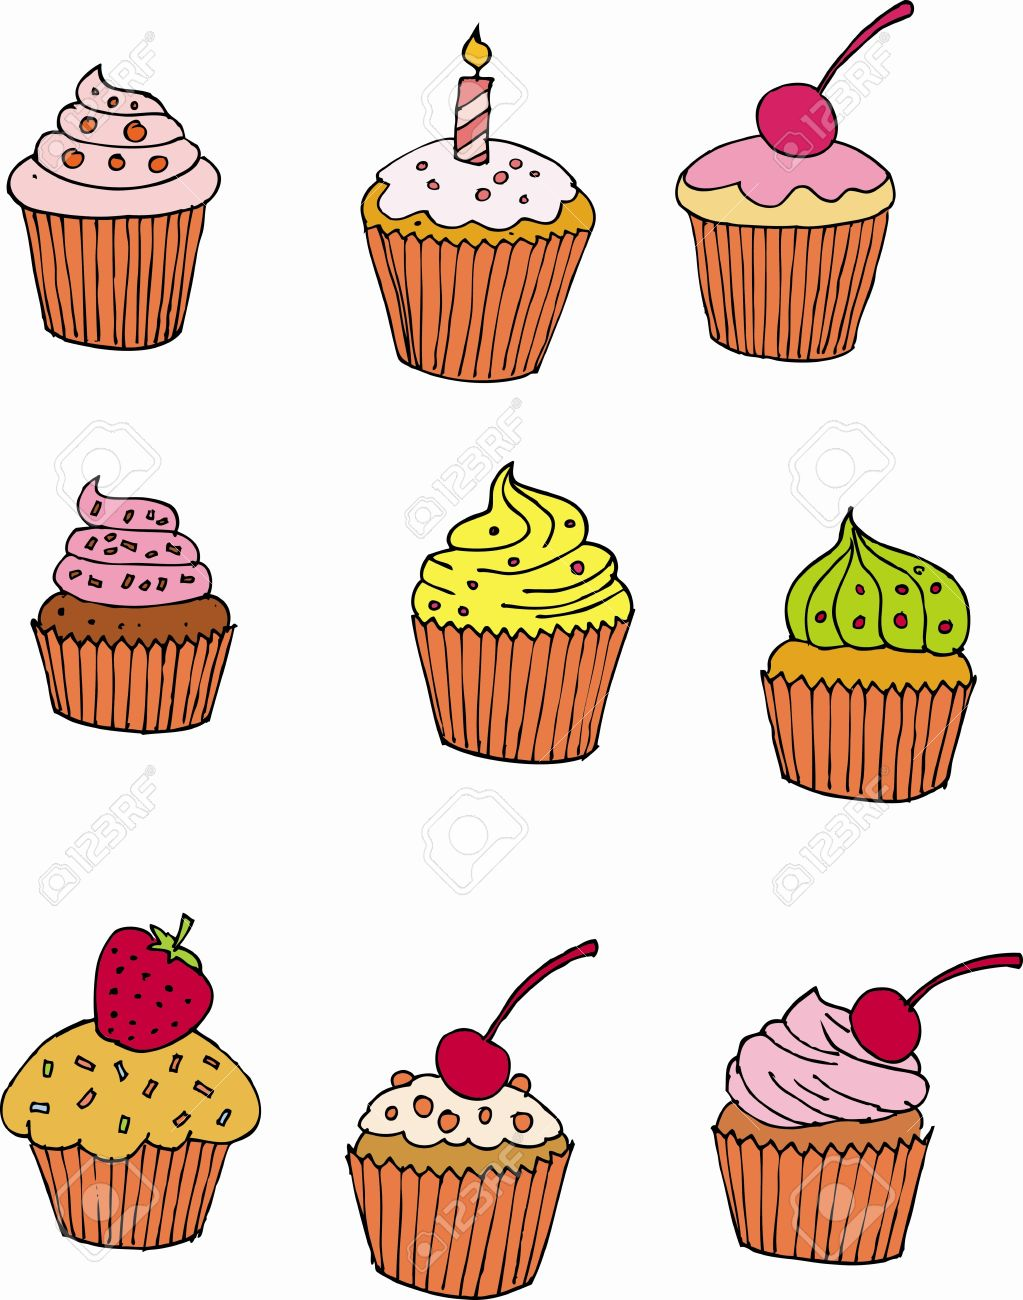 Cup cake hand drawing Stock Vector - 15349932